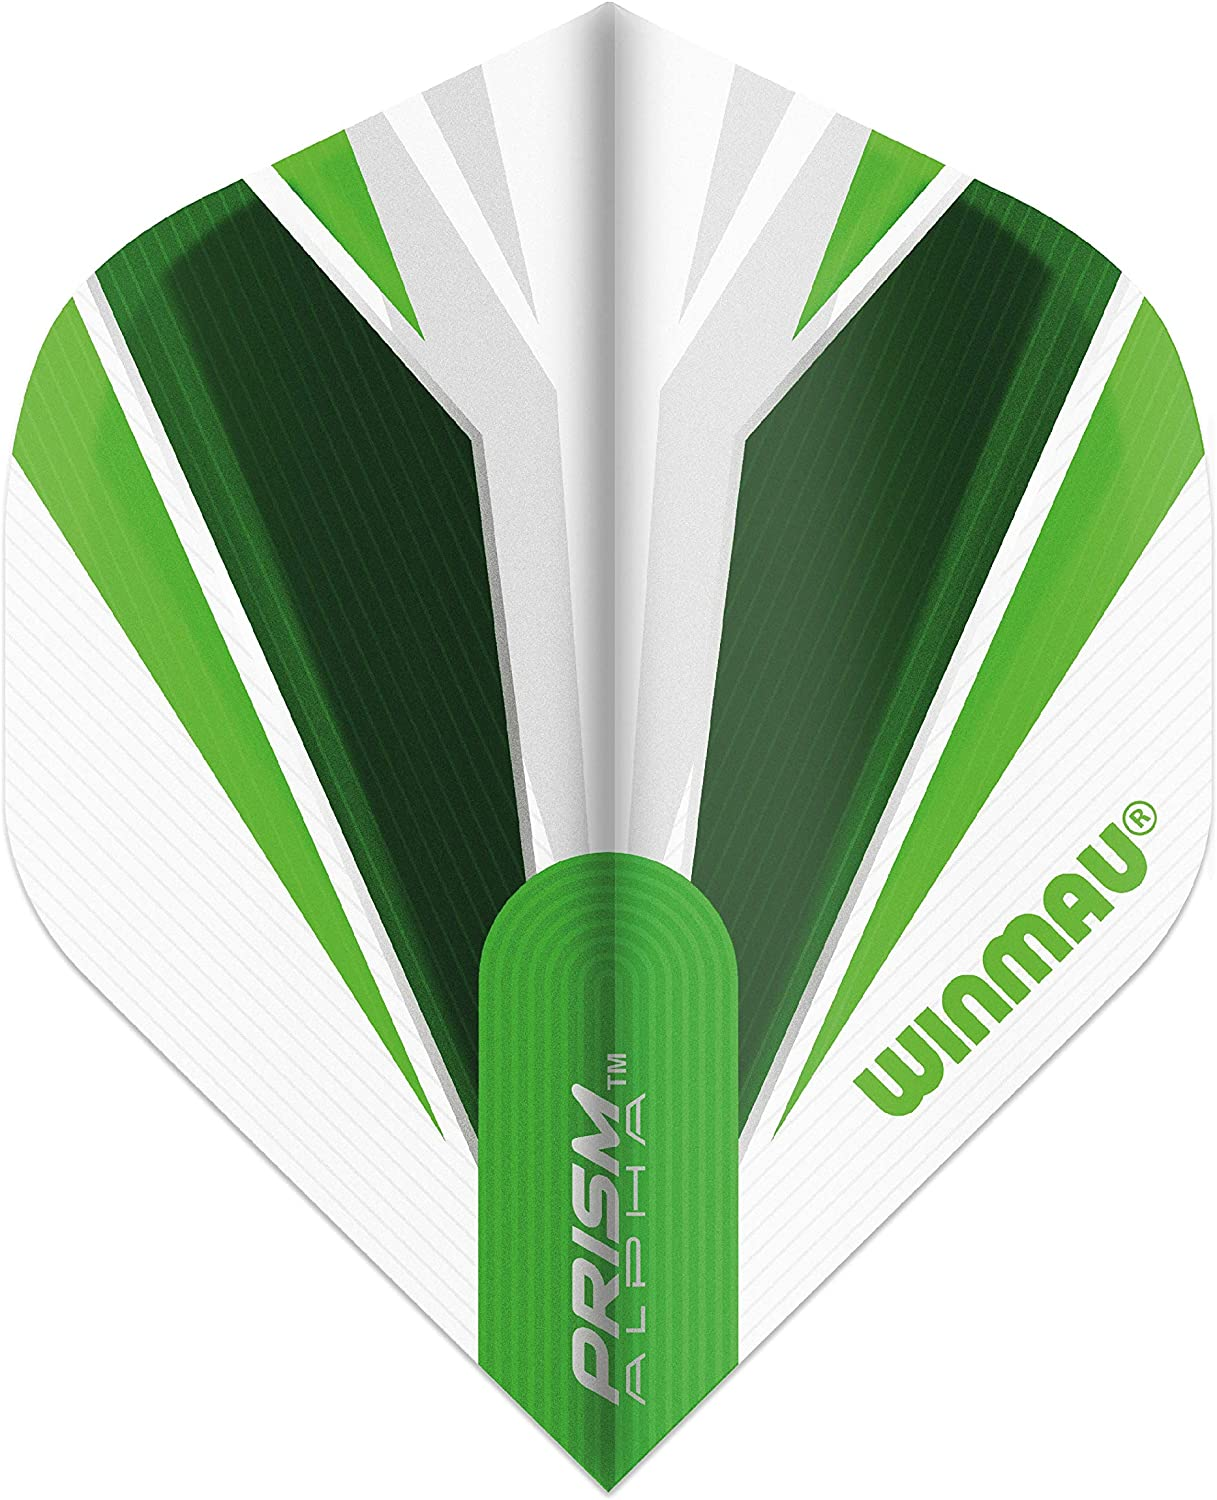 Winmau Prism Shipping included Alpha Flights Dart Max 43% OFF